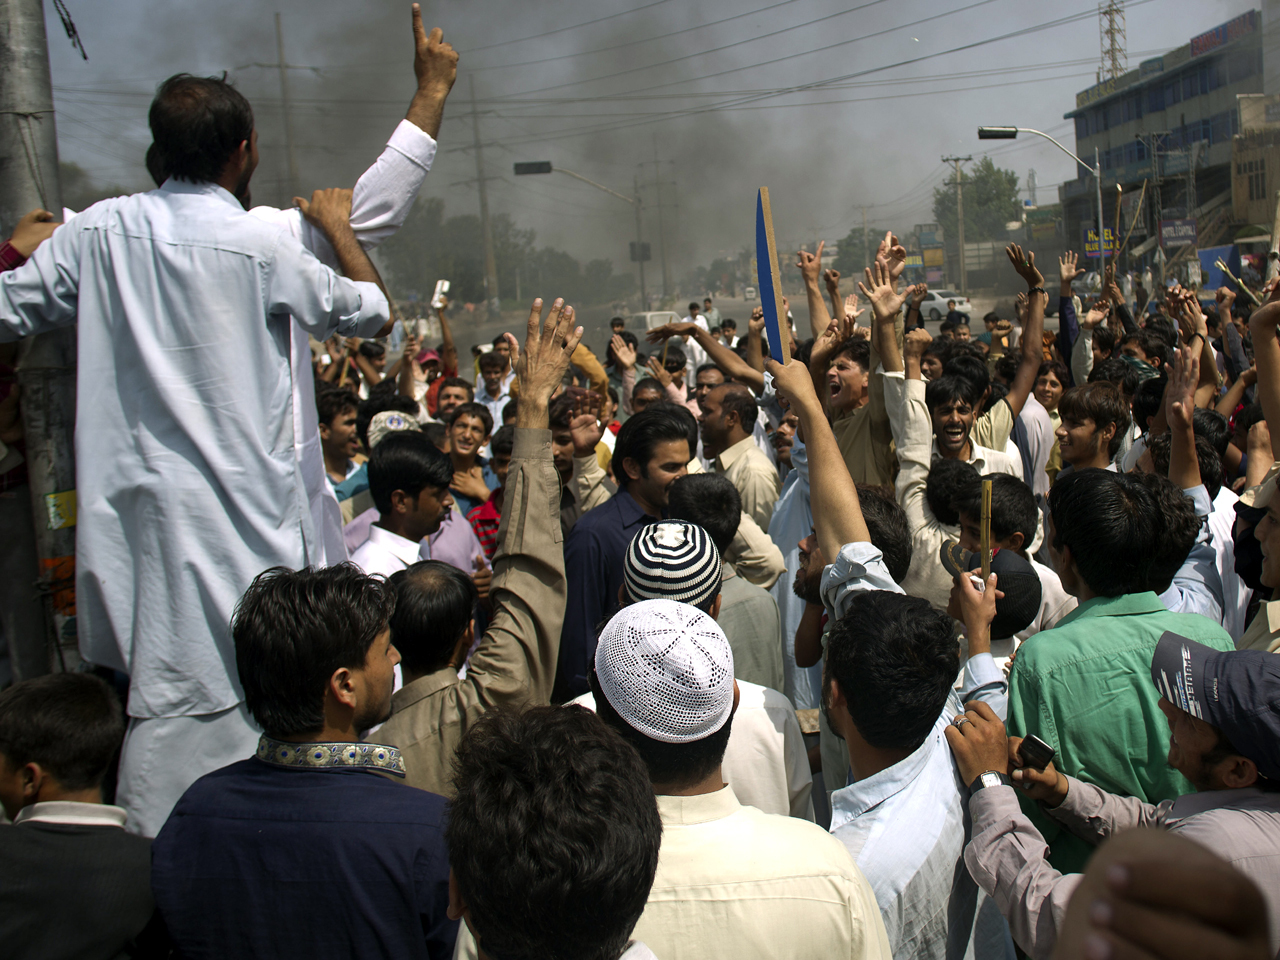 Protest News: Muslim Protesters Think Locally, Rage Globally